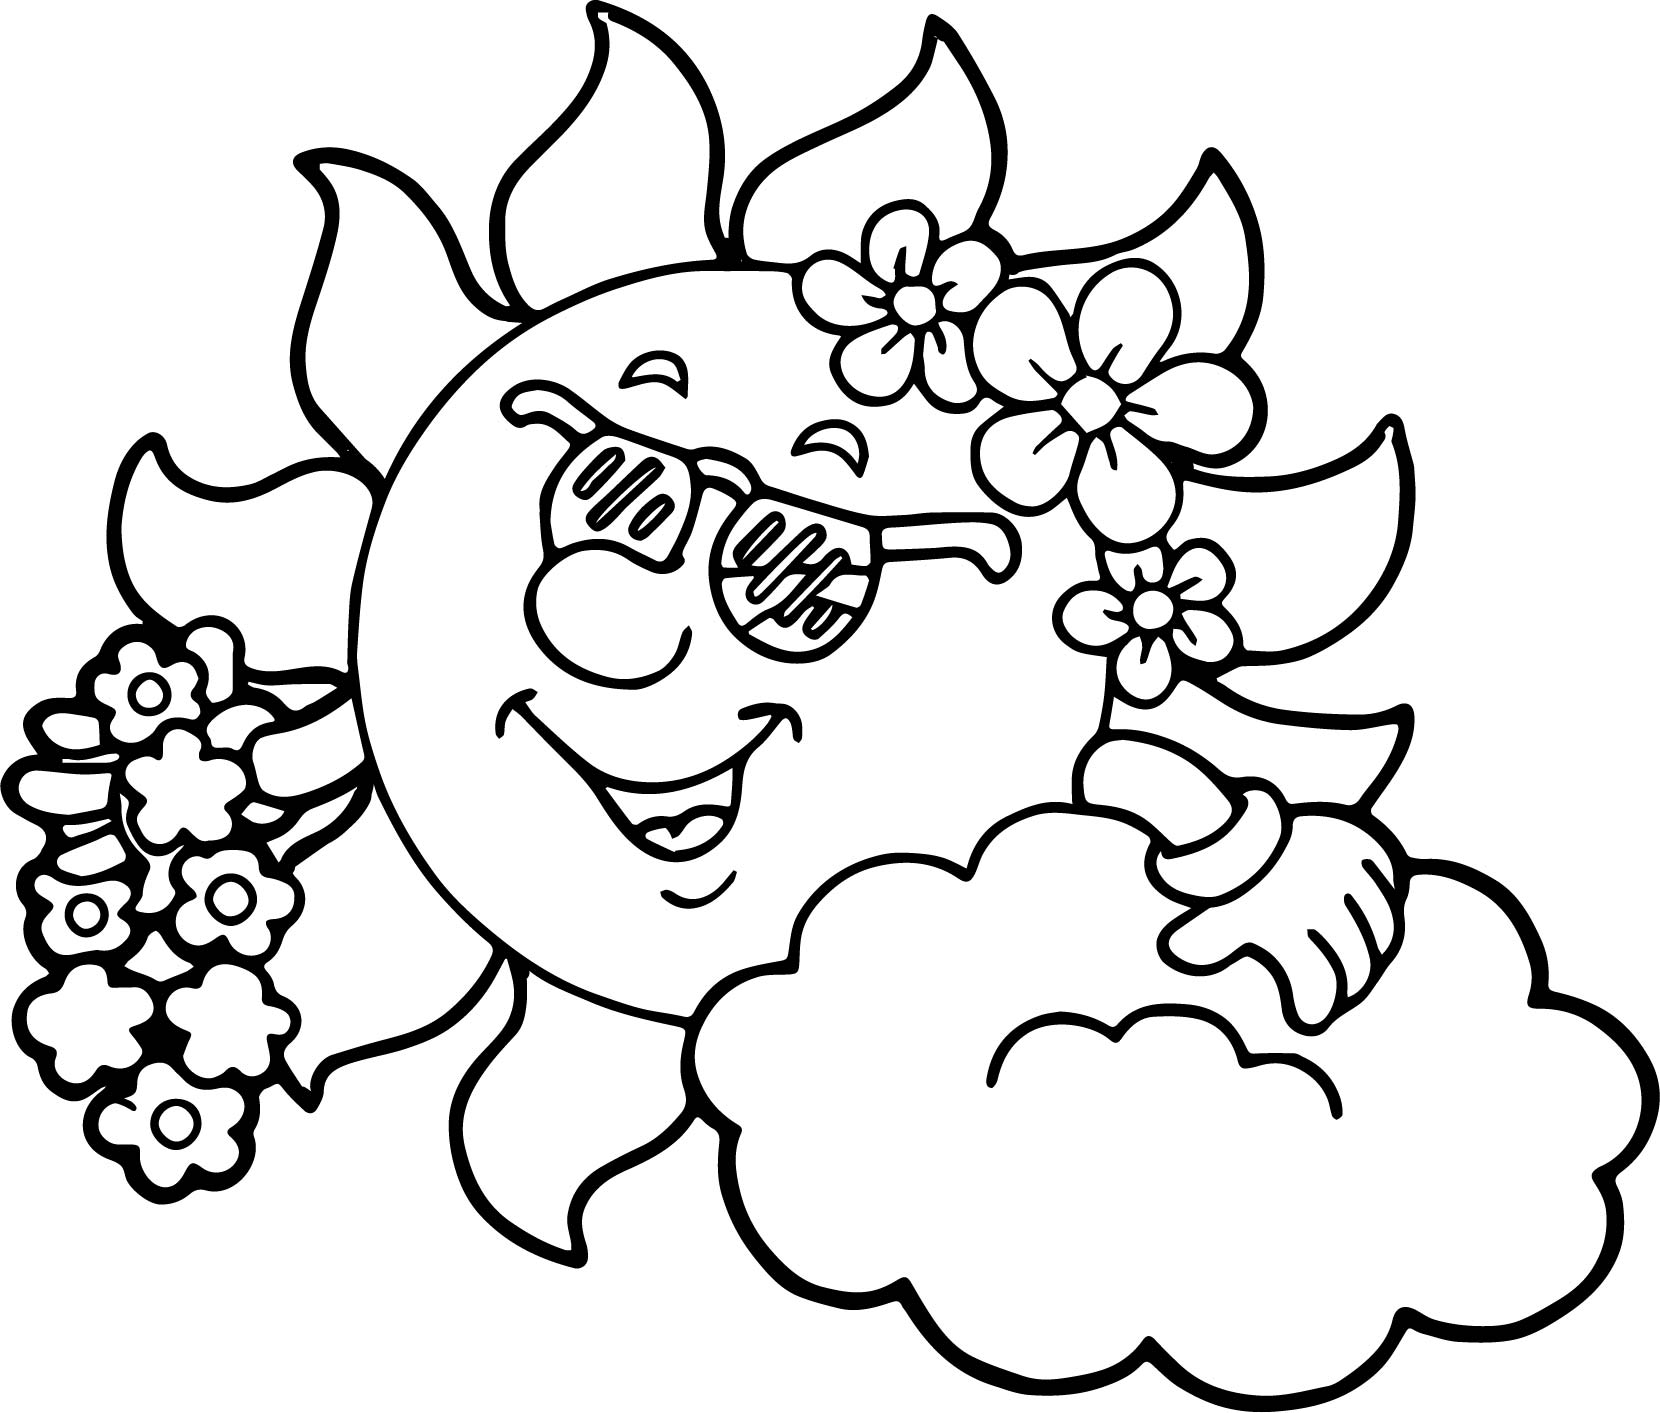 3rd Grade Coloring Pages Printable. 3rd. Best Free